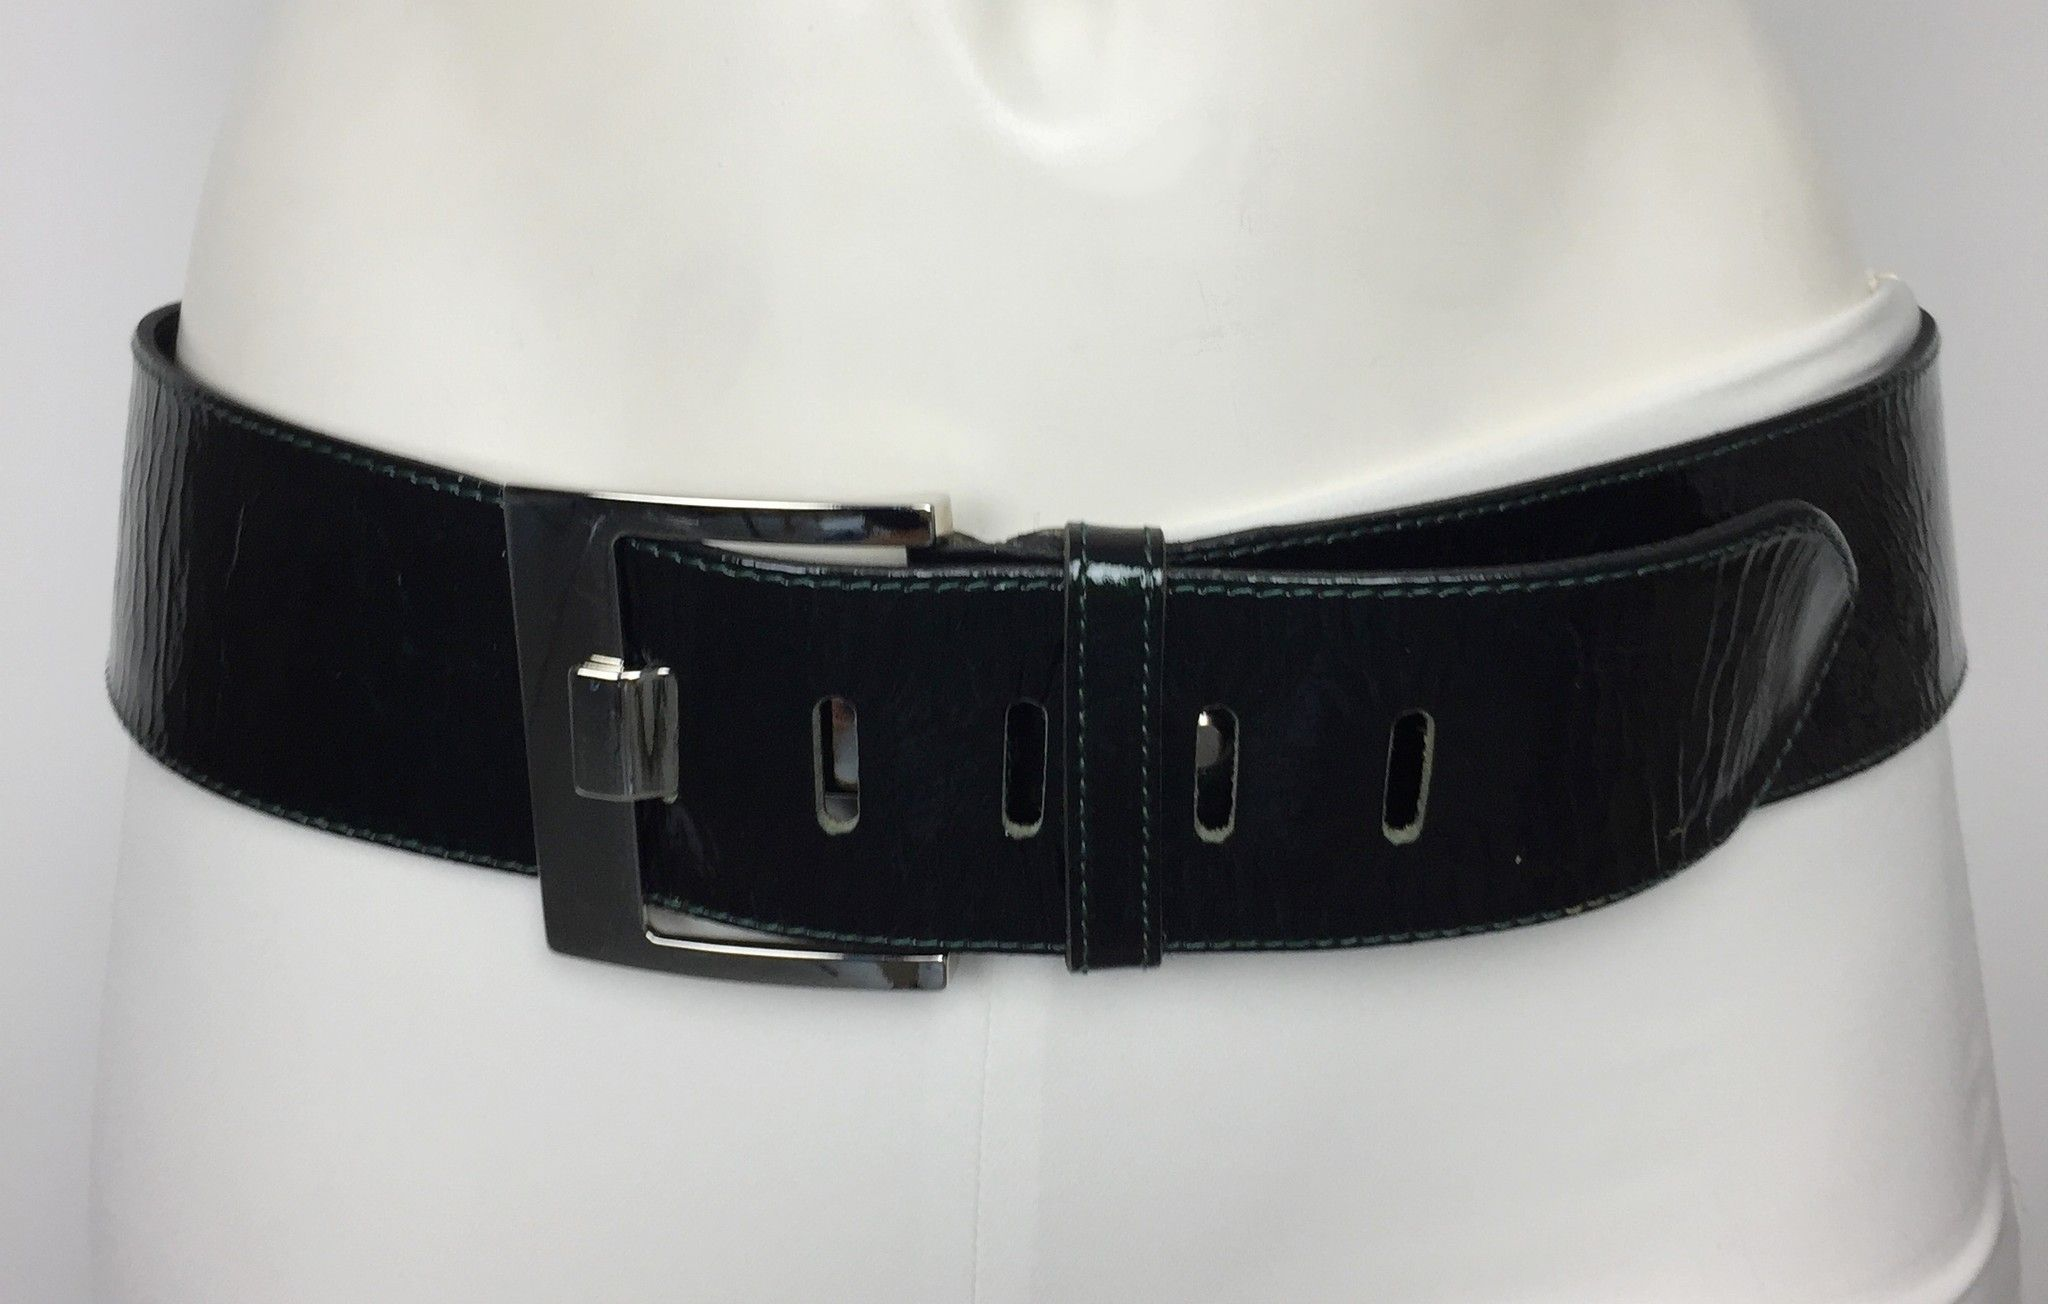 LadyBug Leather Belt with Stainless Steel Buckle Cod.9845